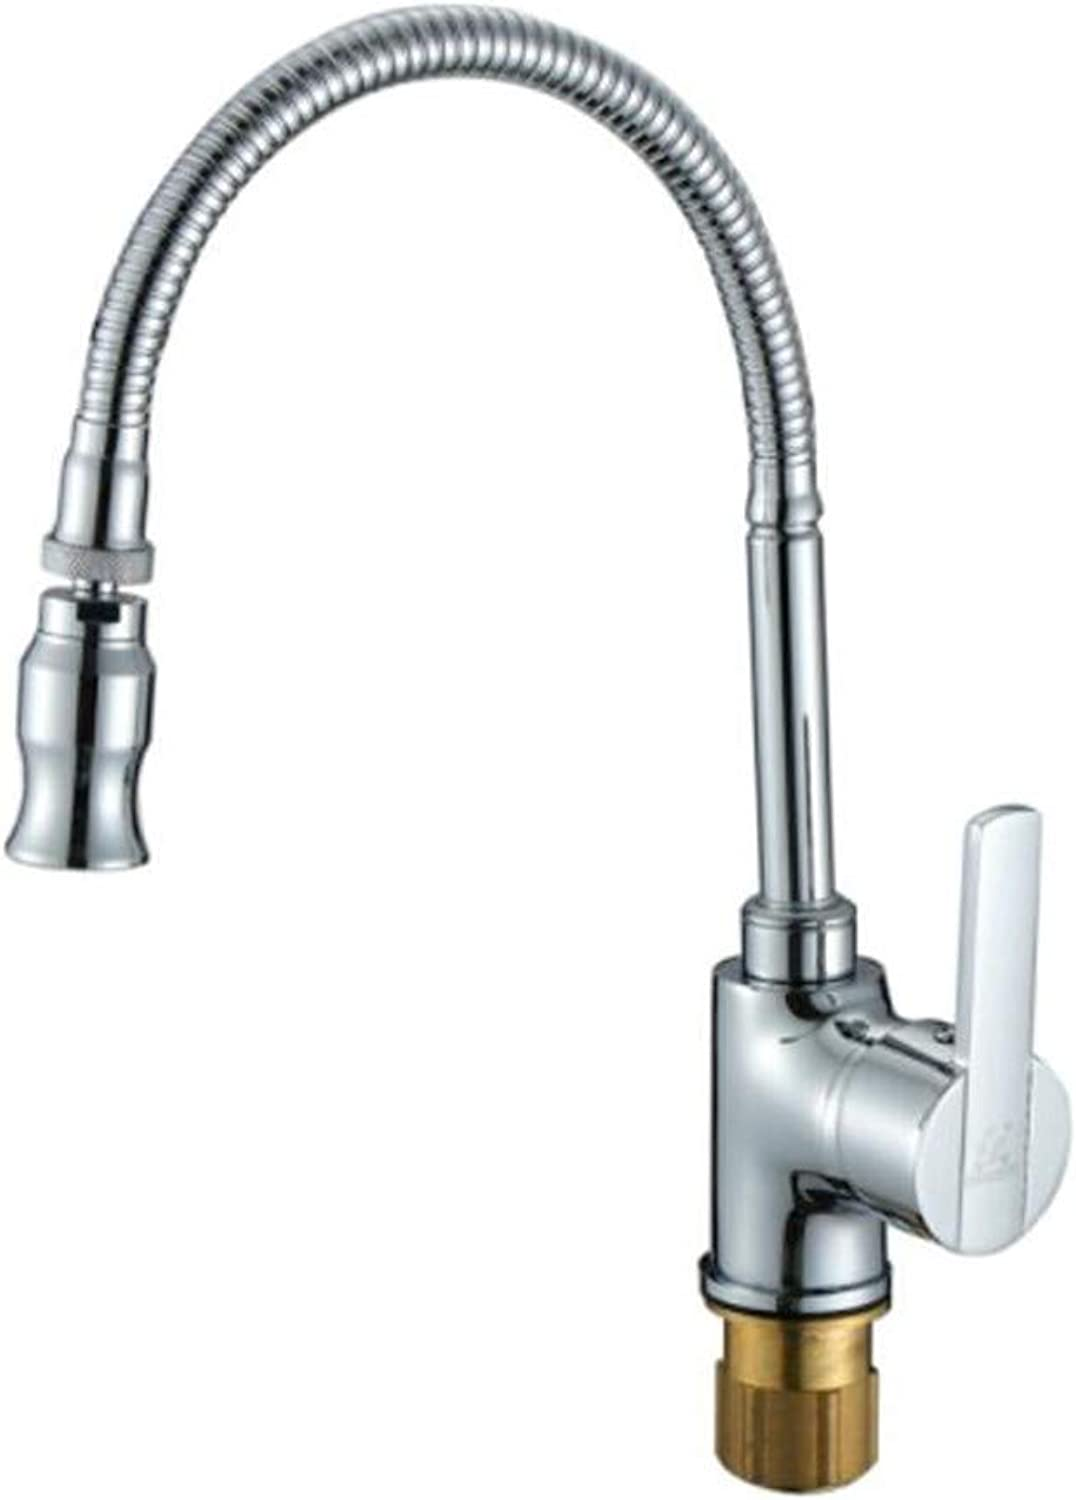 Taps Mixer?Swivel?Faucet Sink Cool and Hot Faucets of Kitchen Dishwash Basin Sink Can redate and Flex in Universal Direction